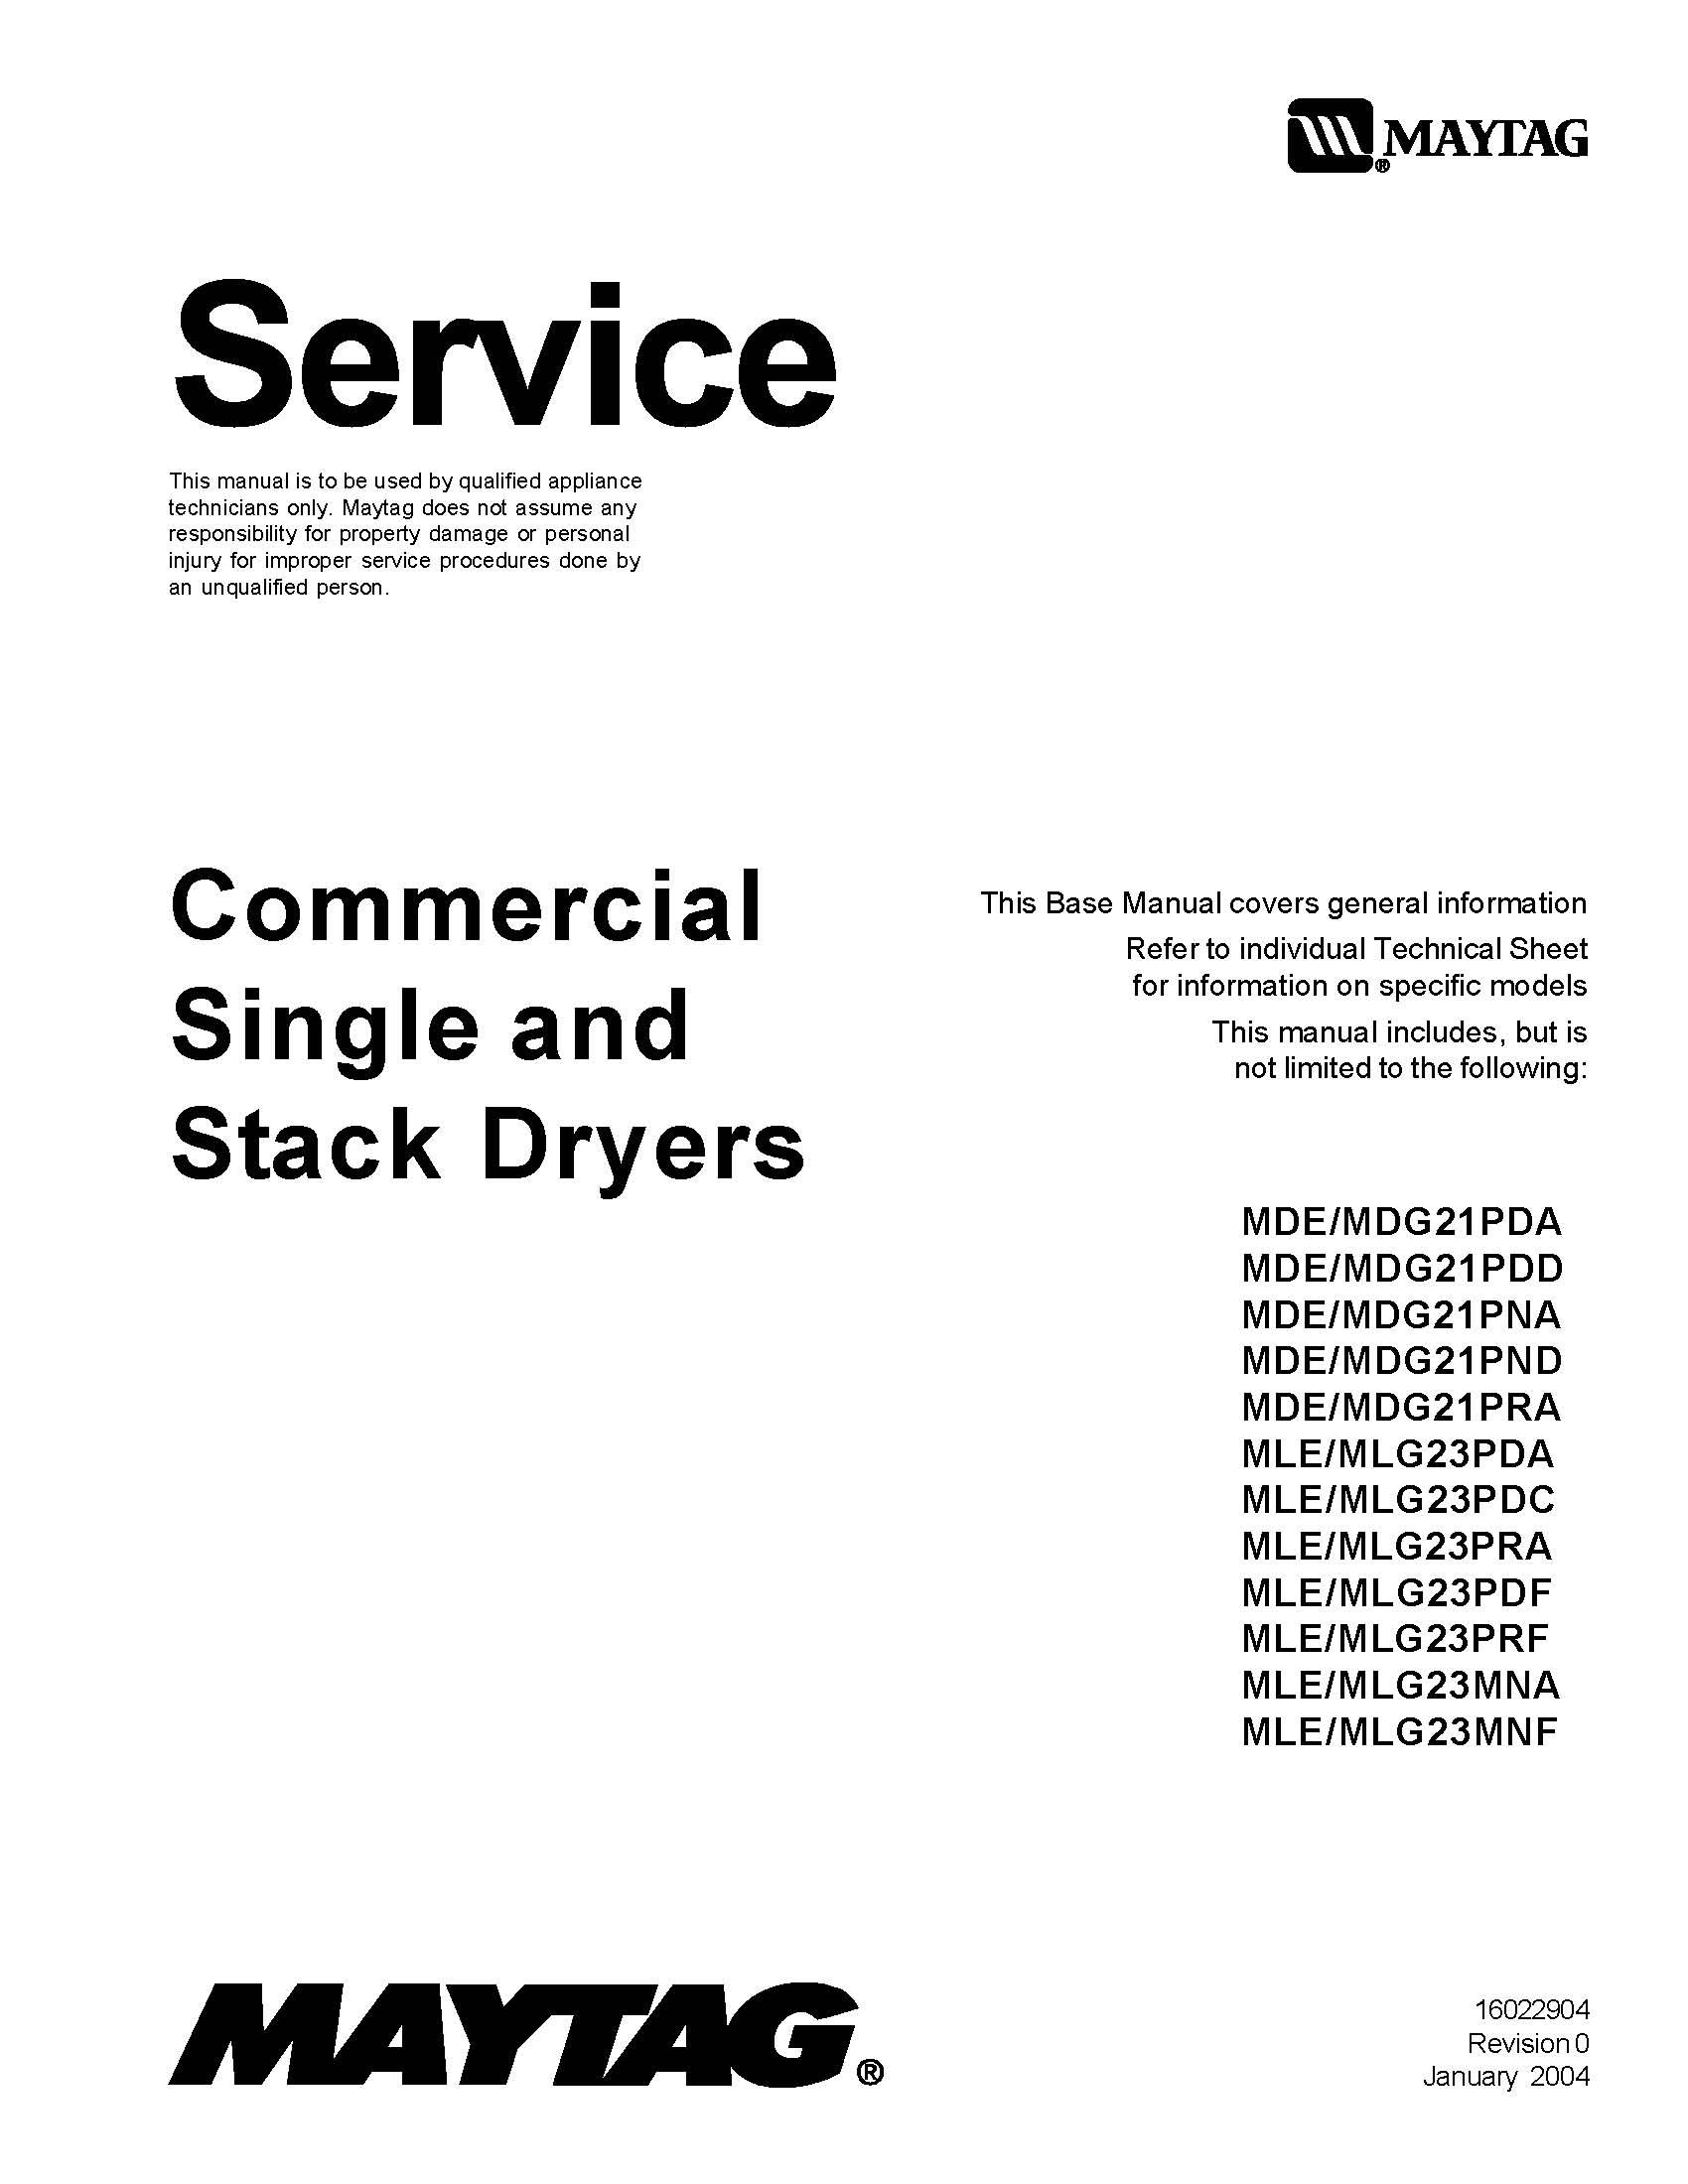 Maytag Mlg23pdhww Service Manual Books Dryer New Edition Schematic